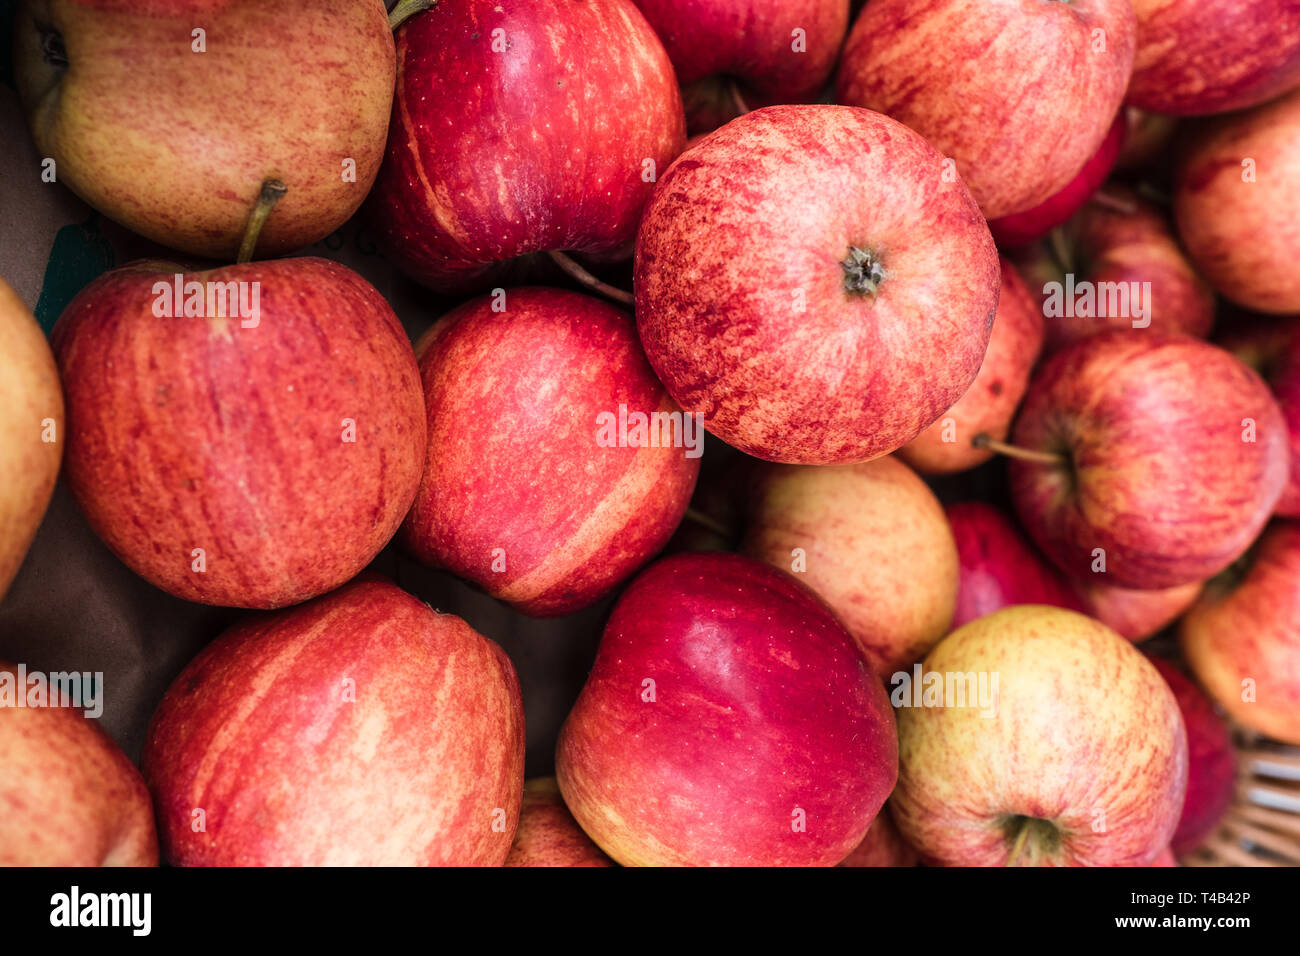 Organic English 'Cox' apples at the Waddesdon Manor Artisan Market. - Stock Image